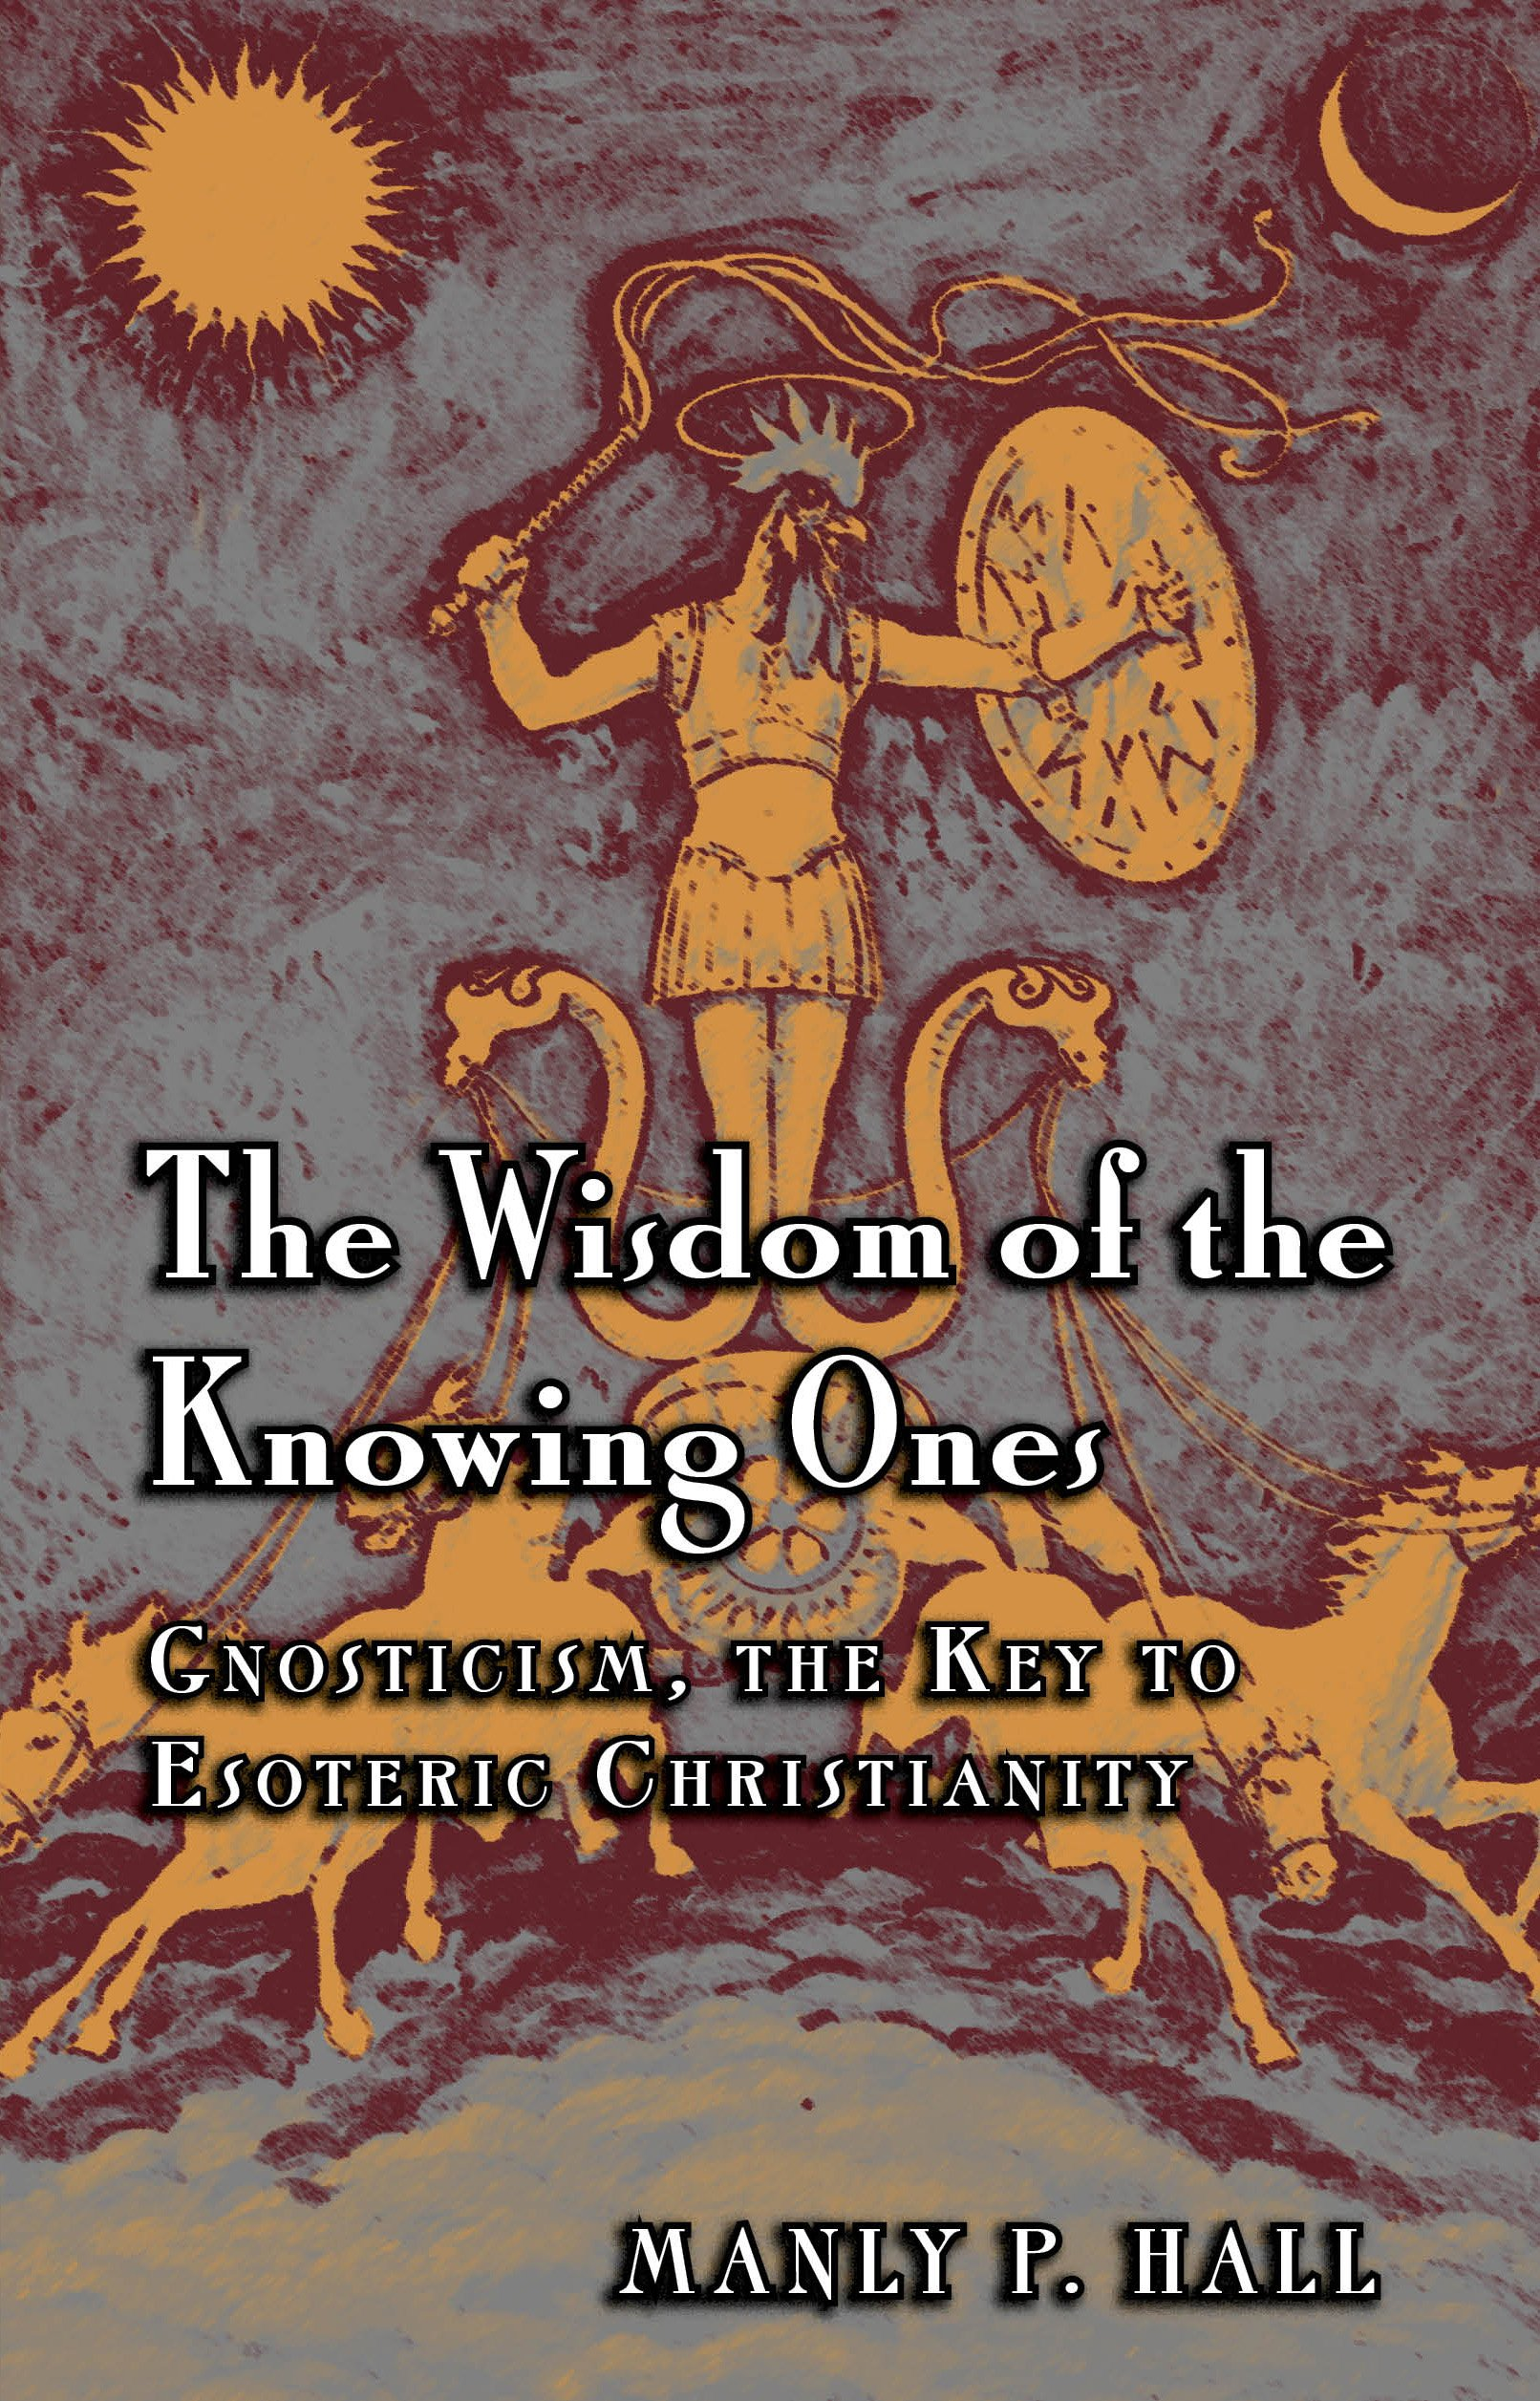 The Wisdom of the Knowing es Gnosticism The Key to Esoteric Christianity Manly P Hall Amazon Books